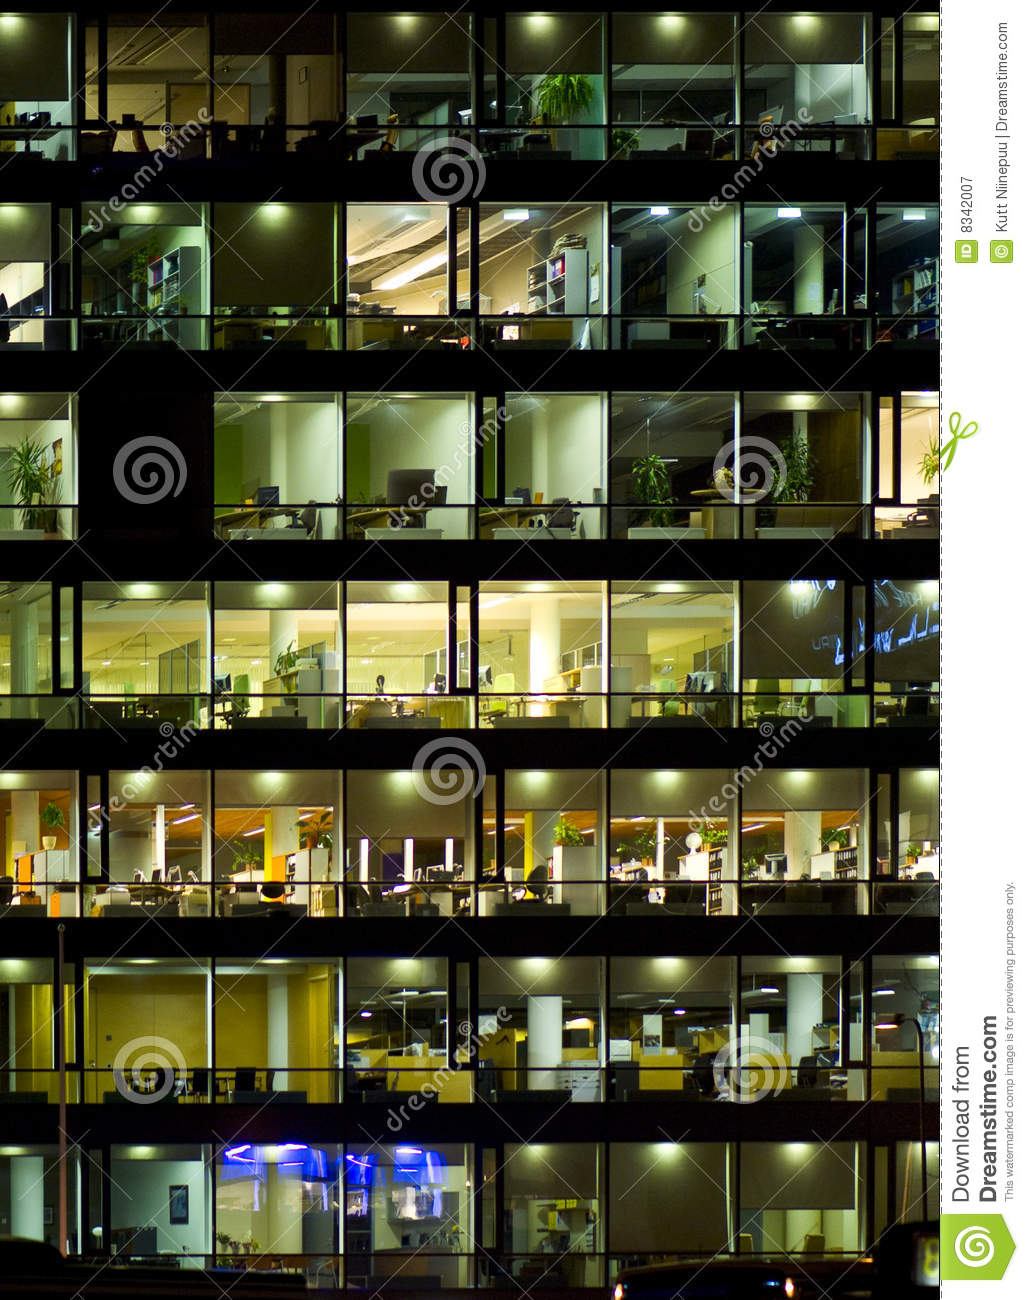 Office building windows